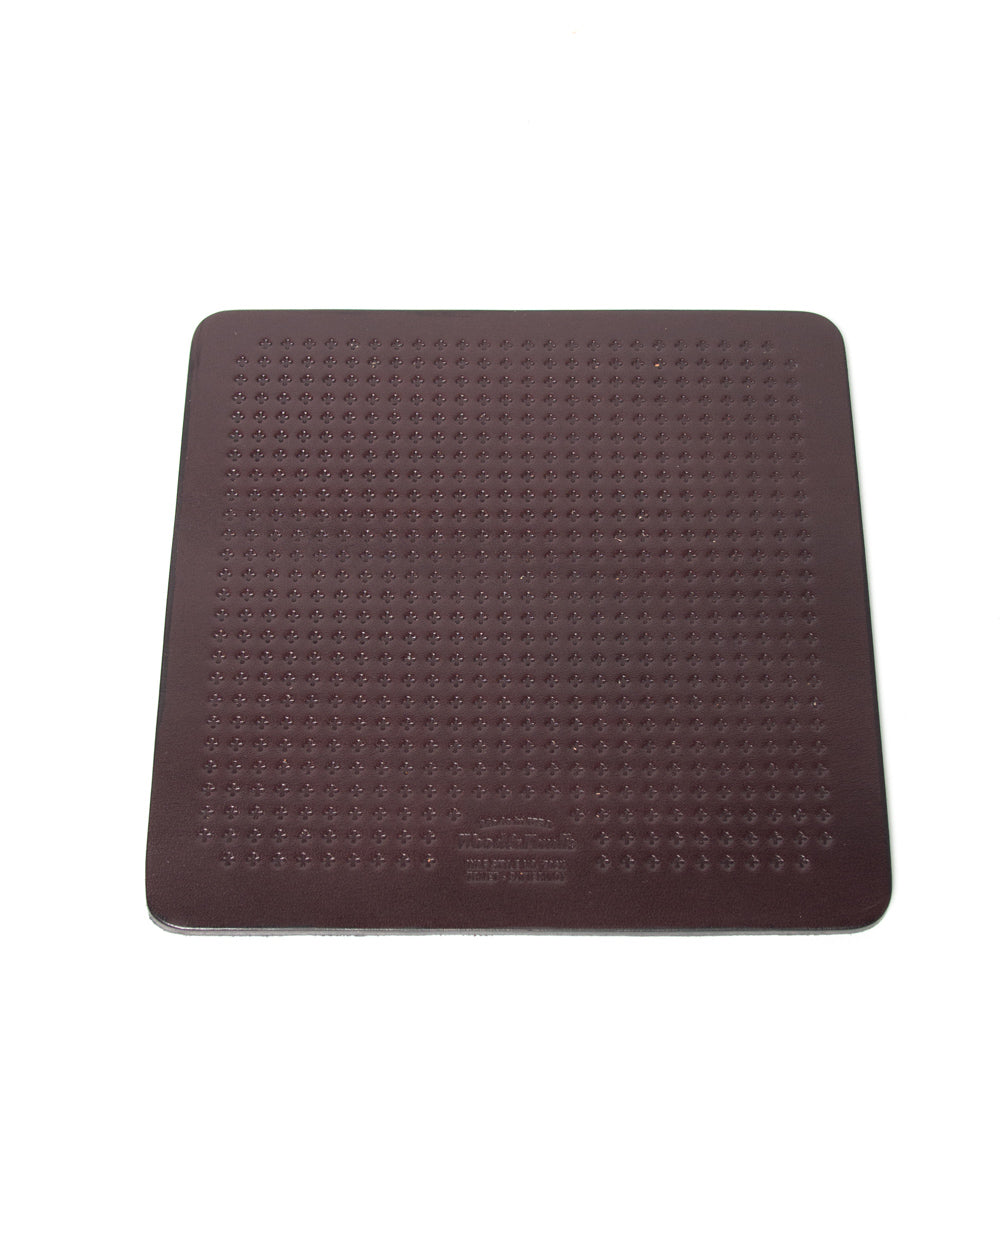 Coaster, Leather, Made USA, Handcrafted